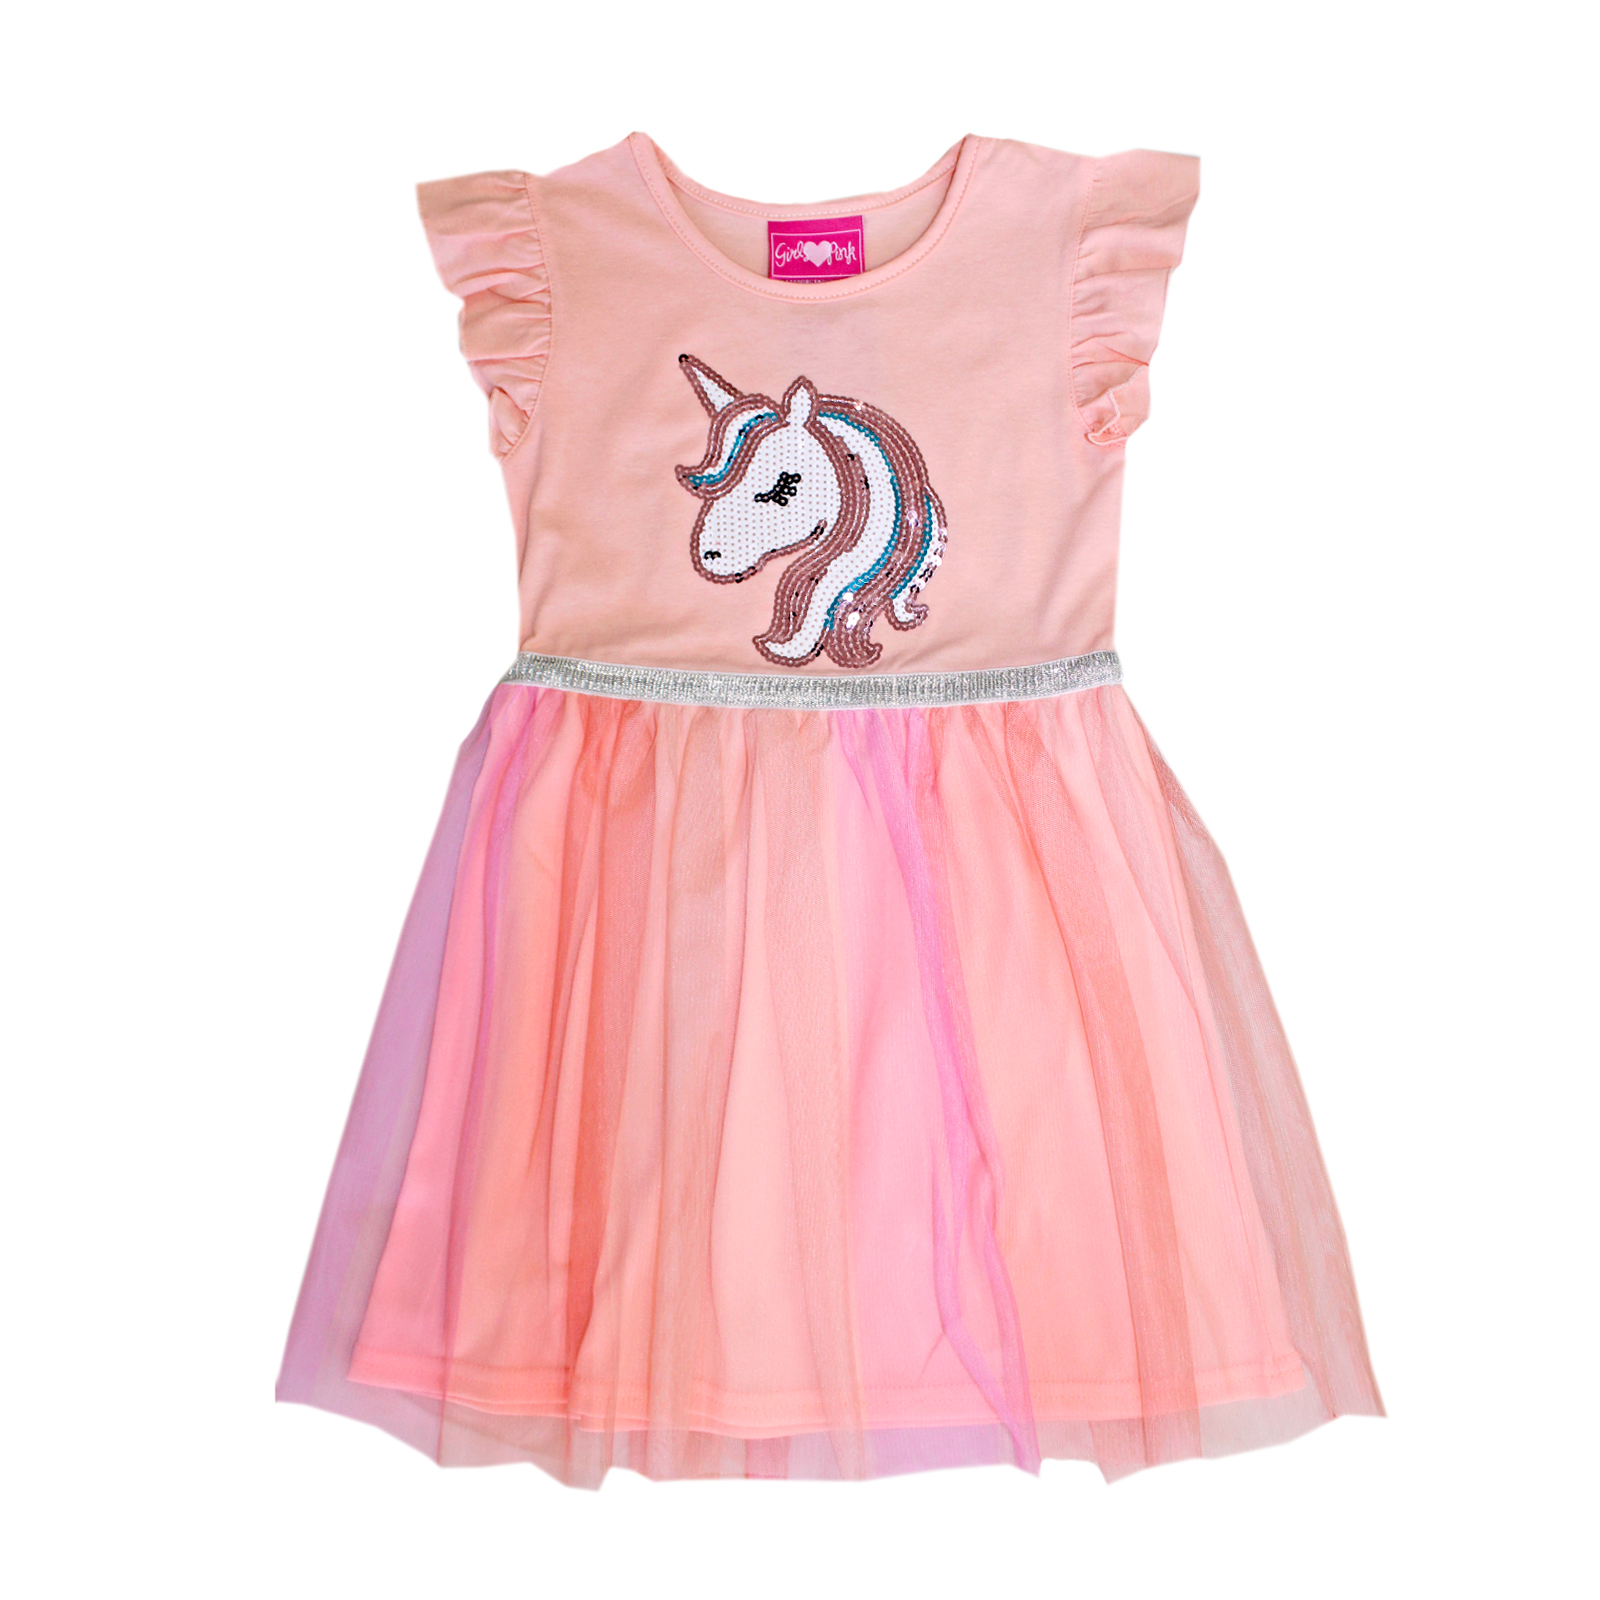 GIRLS PINK Toddler Unicorn Sequins Tulle Dress